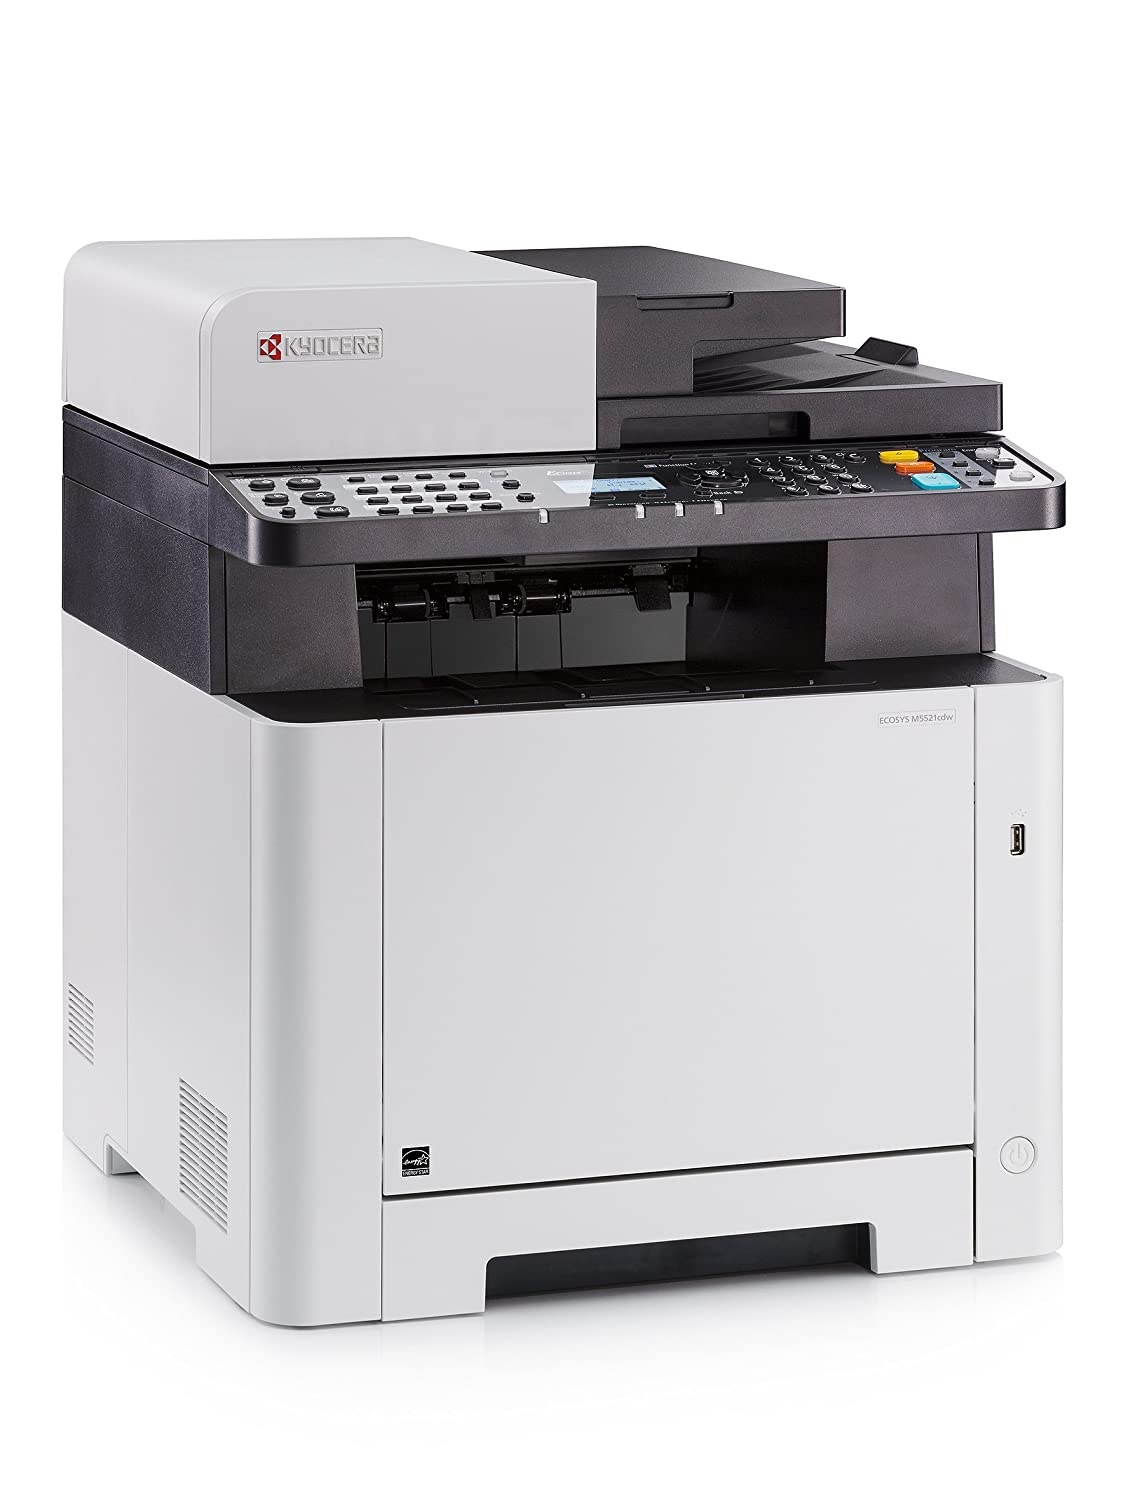 Amazon New Kyocera ECOSYS M5521cdw Color Multifunctional Printer Print Scan Copy Fax Wireless Electronics